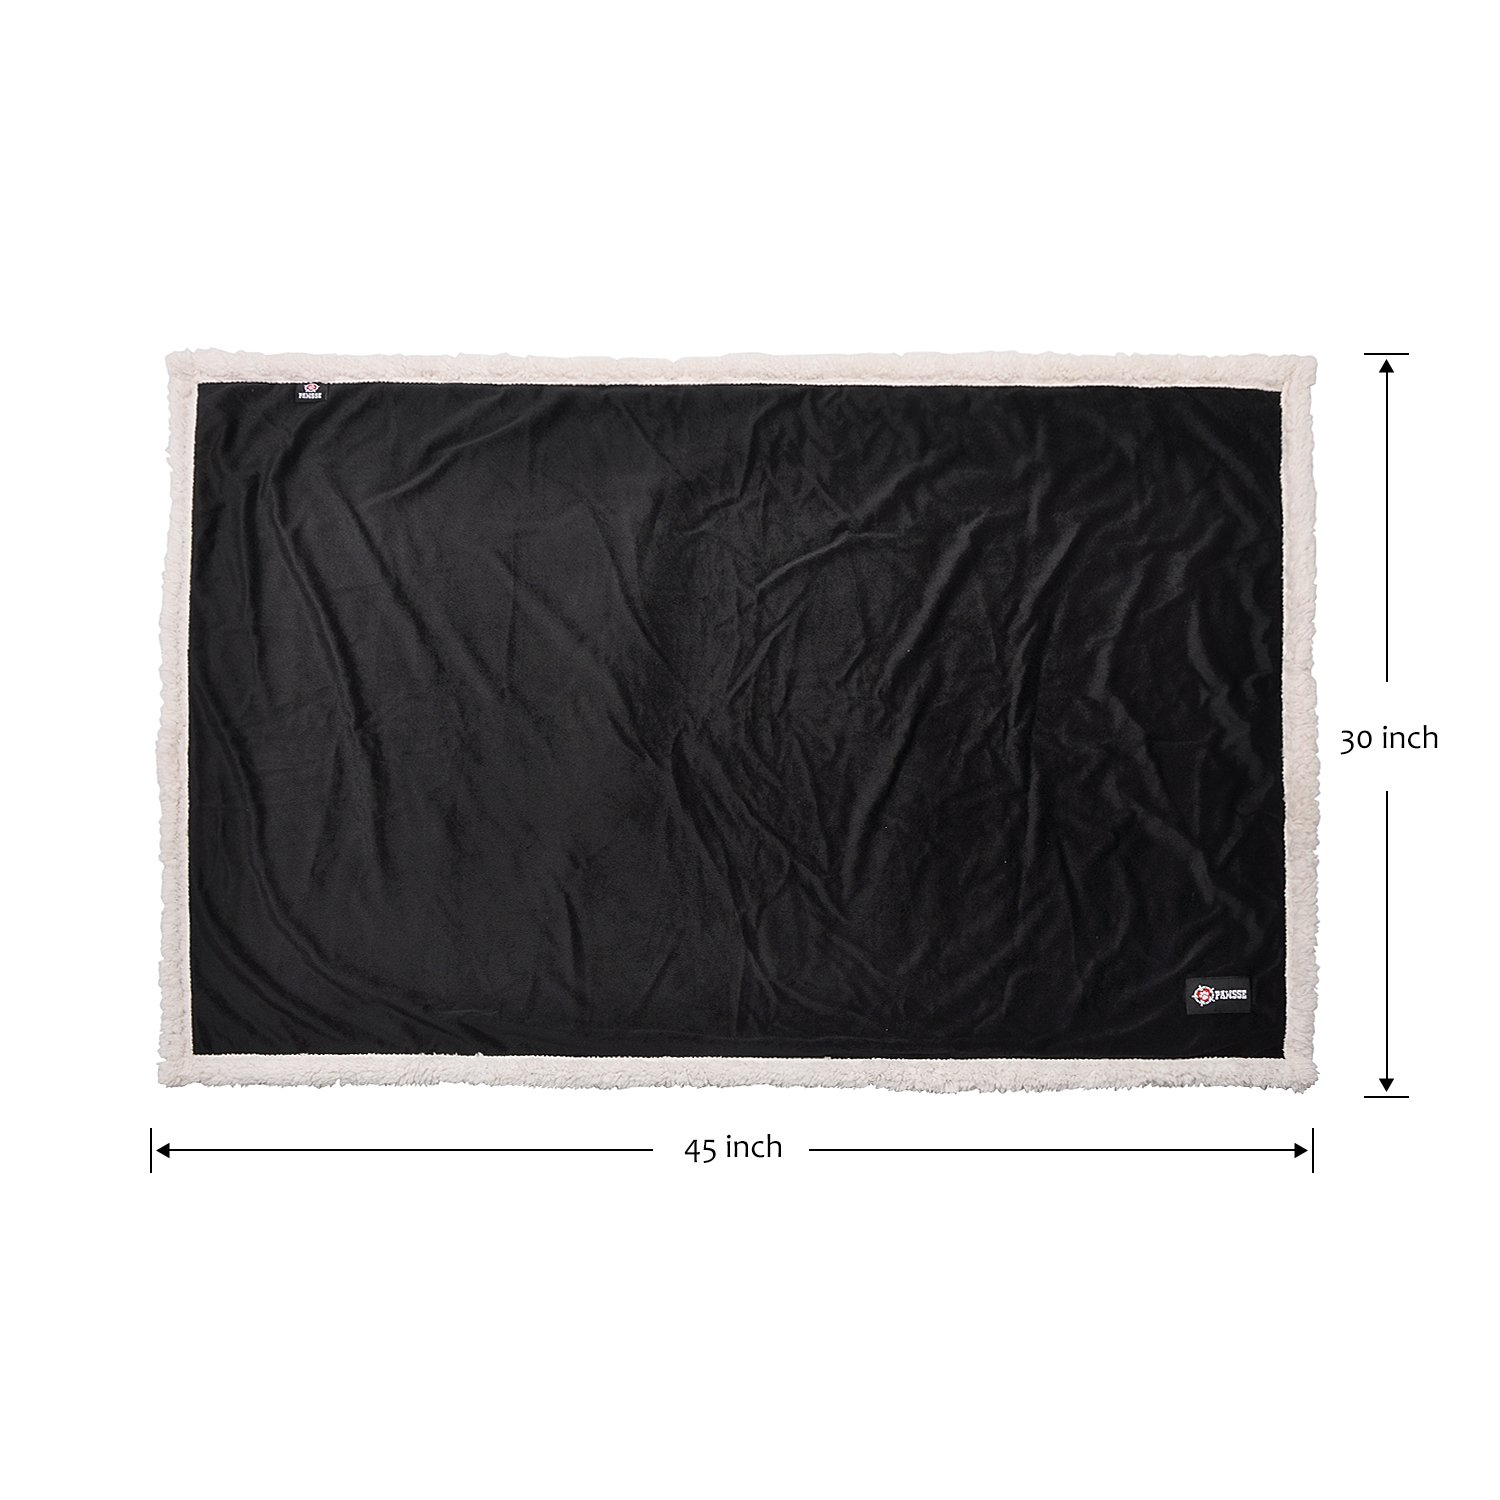 Pawsse Sherpa Pet Blanket for Puppy Kitten Bed Kennel Carrier Sleep Mat Couch Sofa, 45-Inch-by-30-Inch, Warm, Cozy, Reversible, Plush, Black